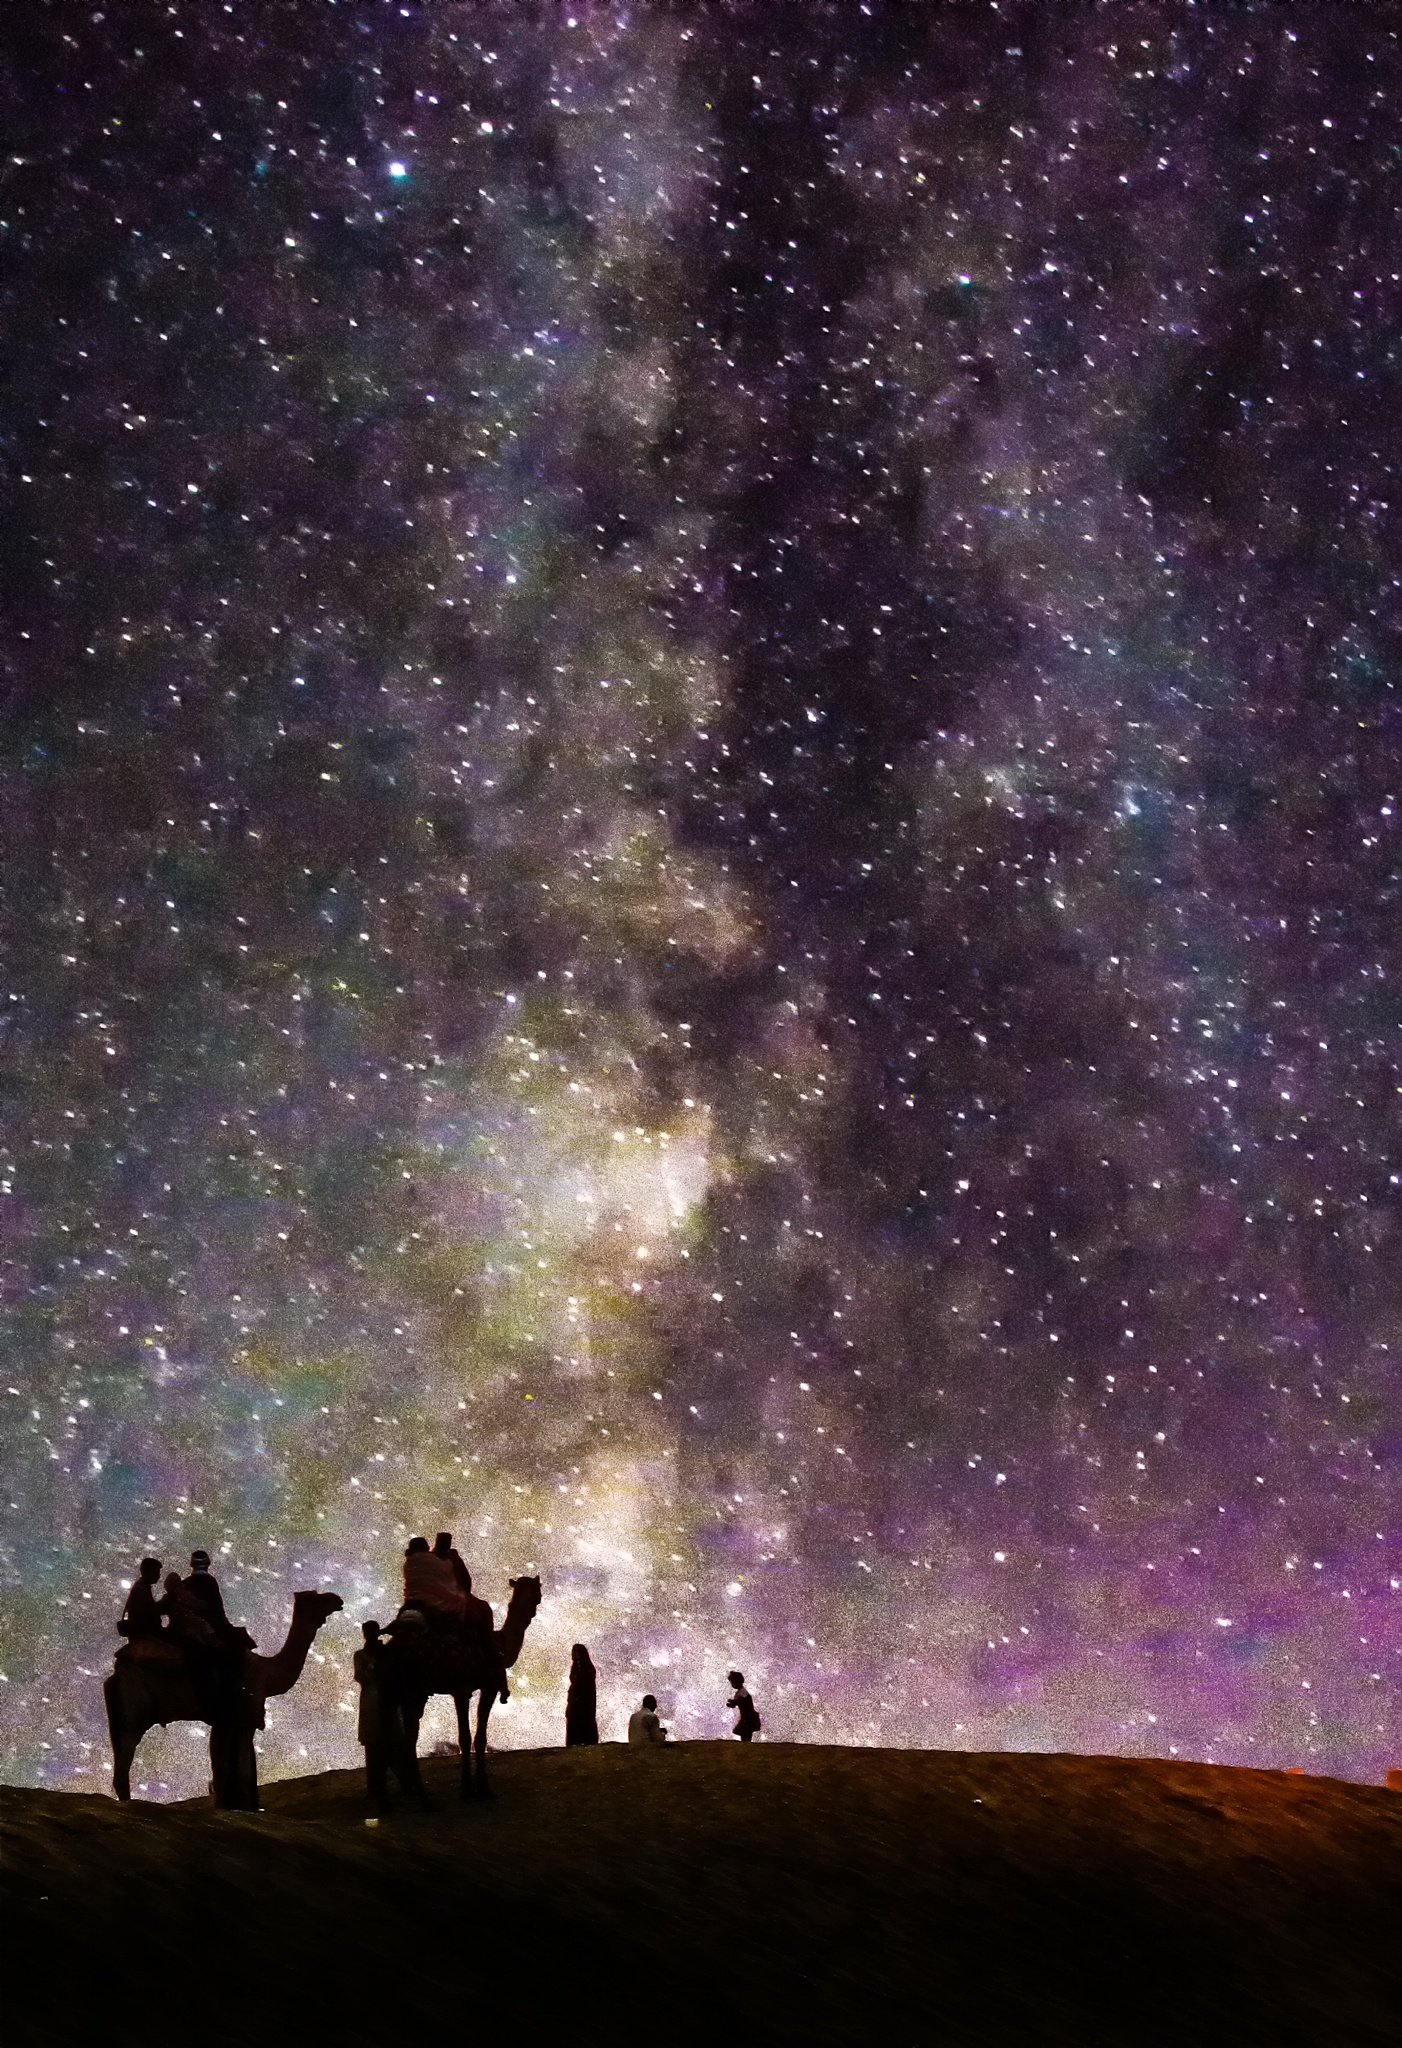 riding into stars by photography by a rookie